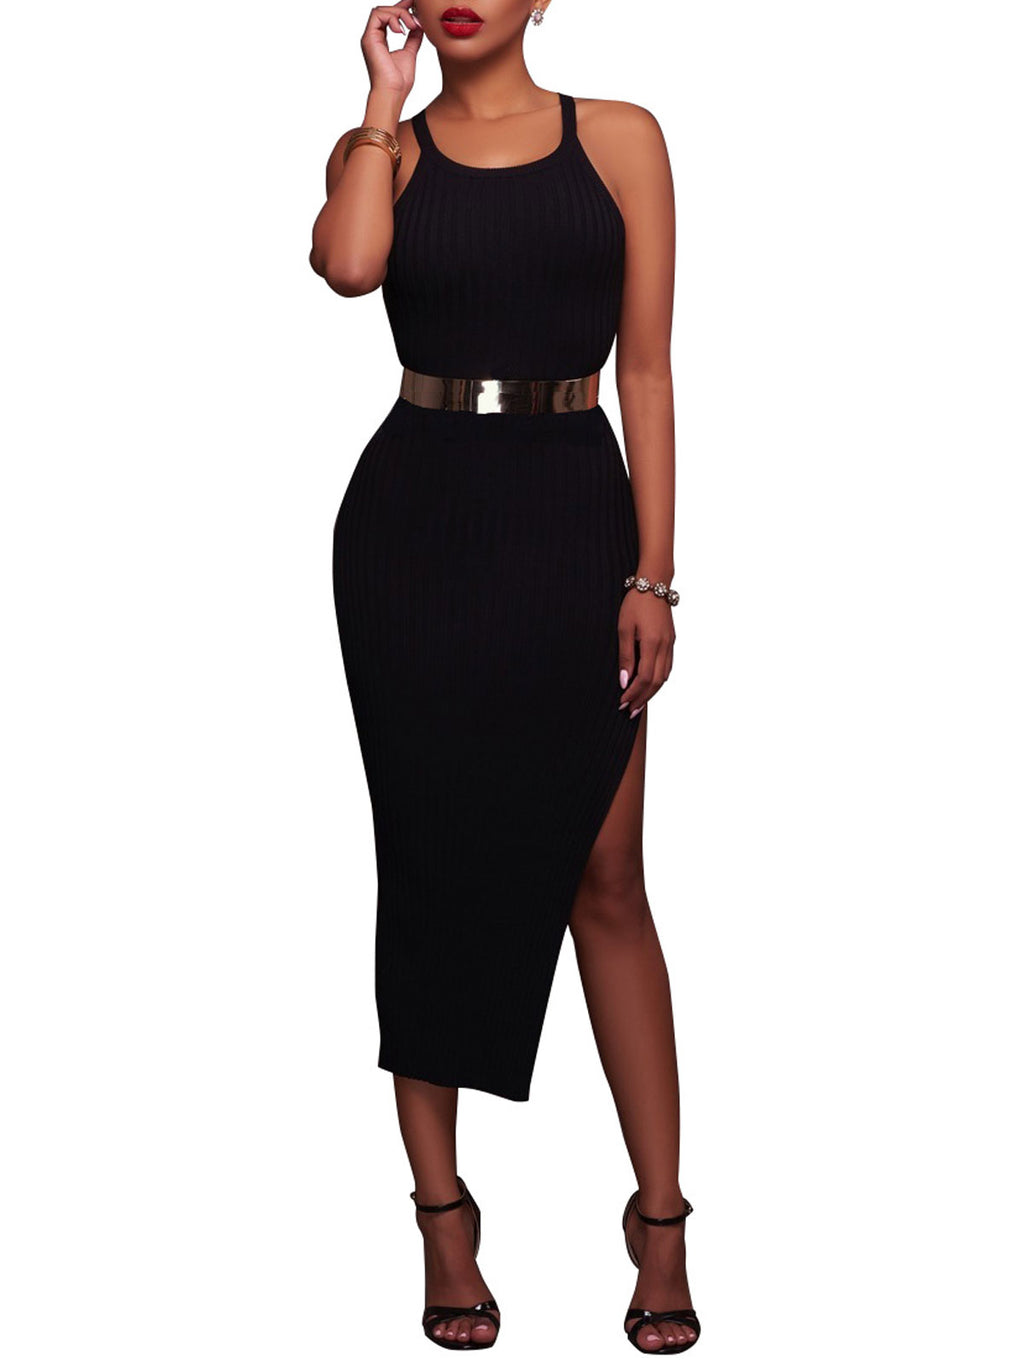 Basic Plus Size Spaghetti Strap Split Sleeveless Evening Gowns Long Sleeve Bodycon Dress Rikkishop